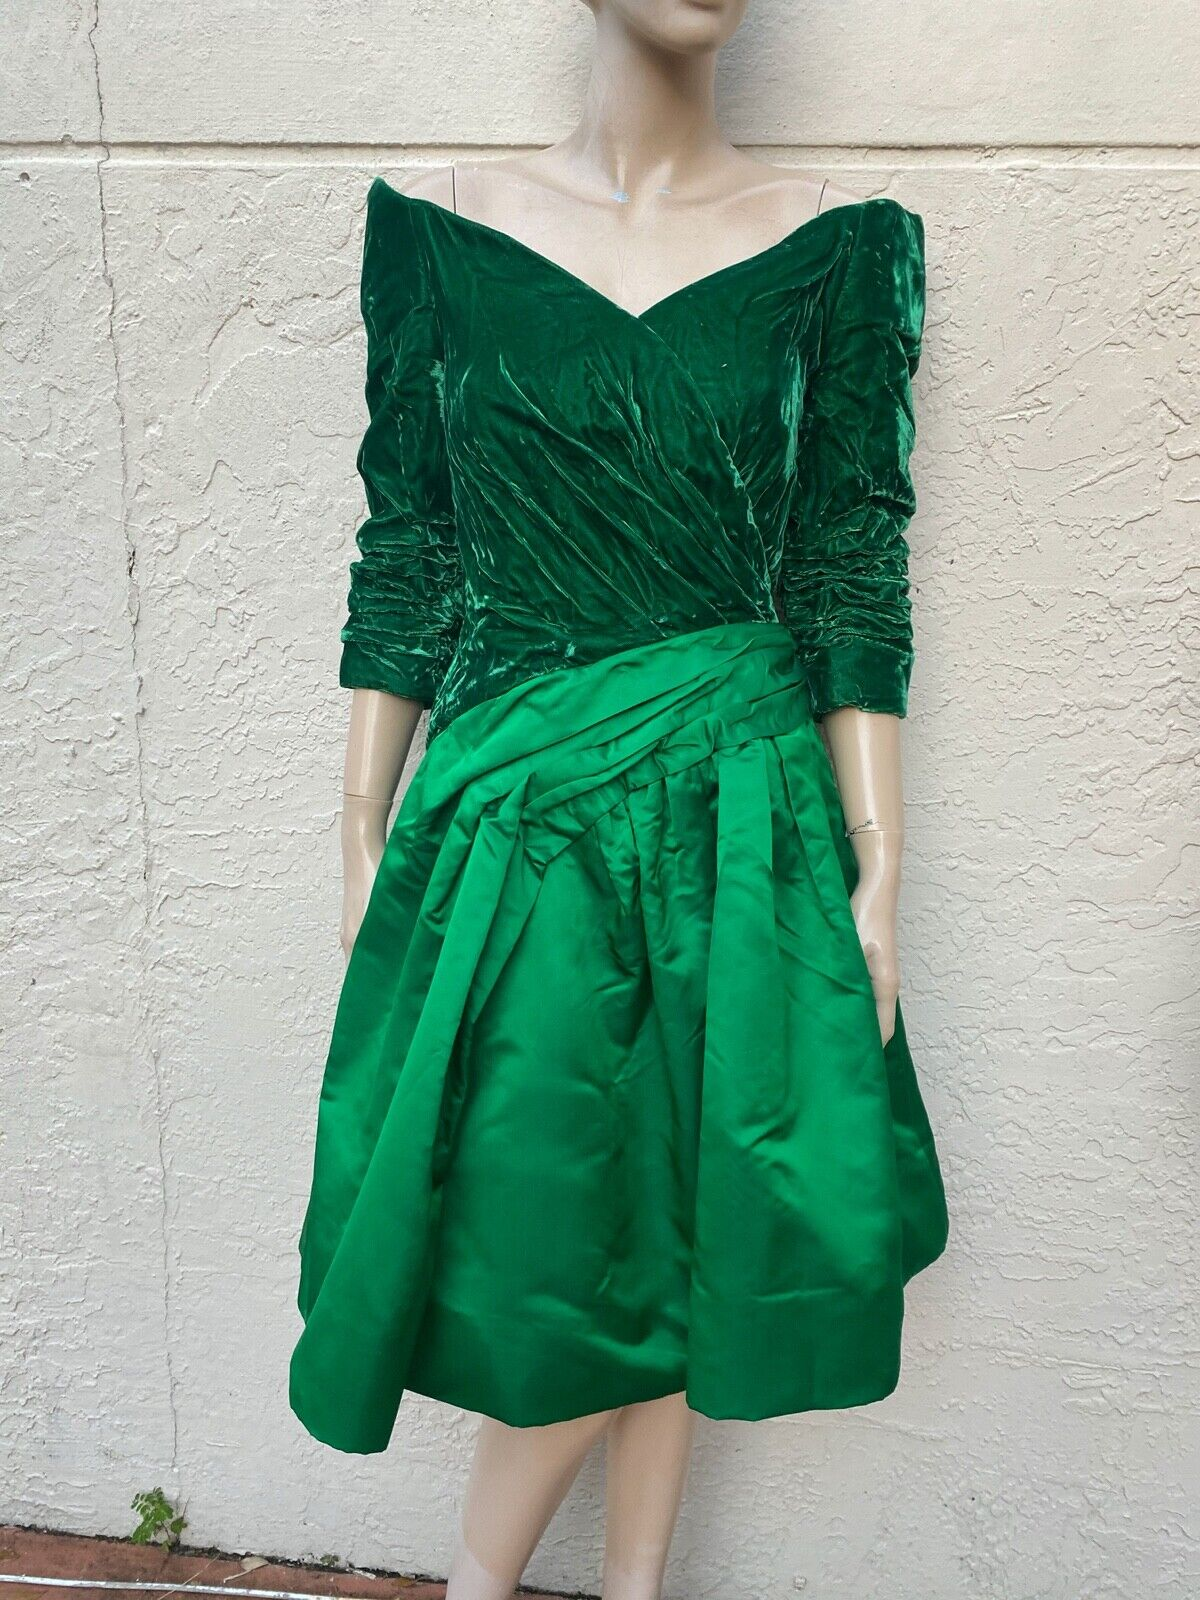 ARNOLD SCAASI BOUTIQUE VINTAGE 80's OFF THE SHOUL… - image 2